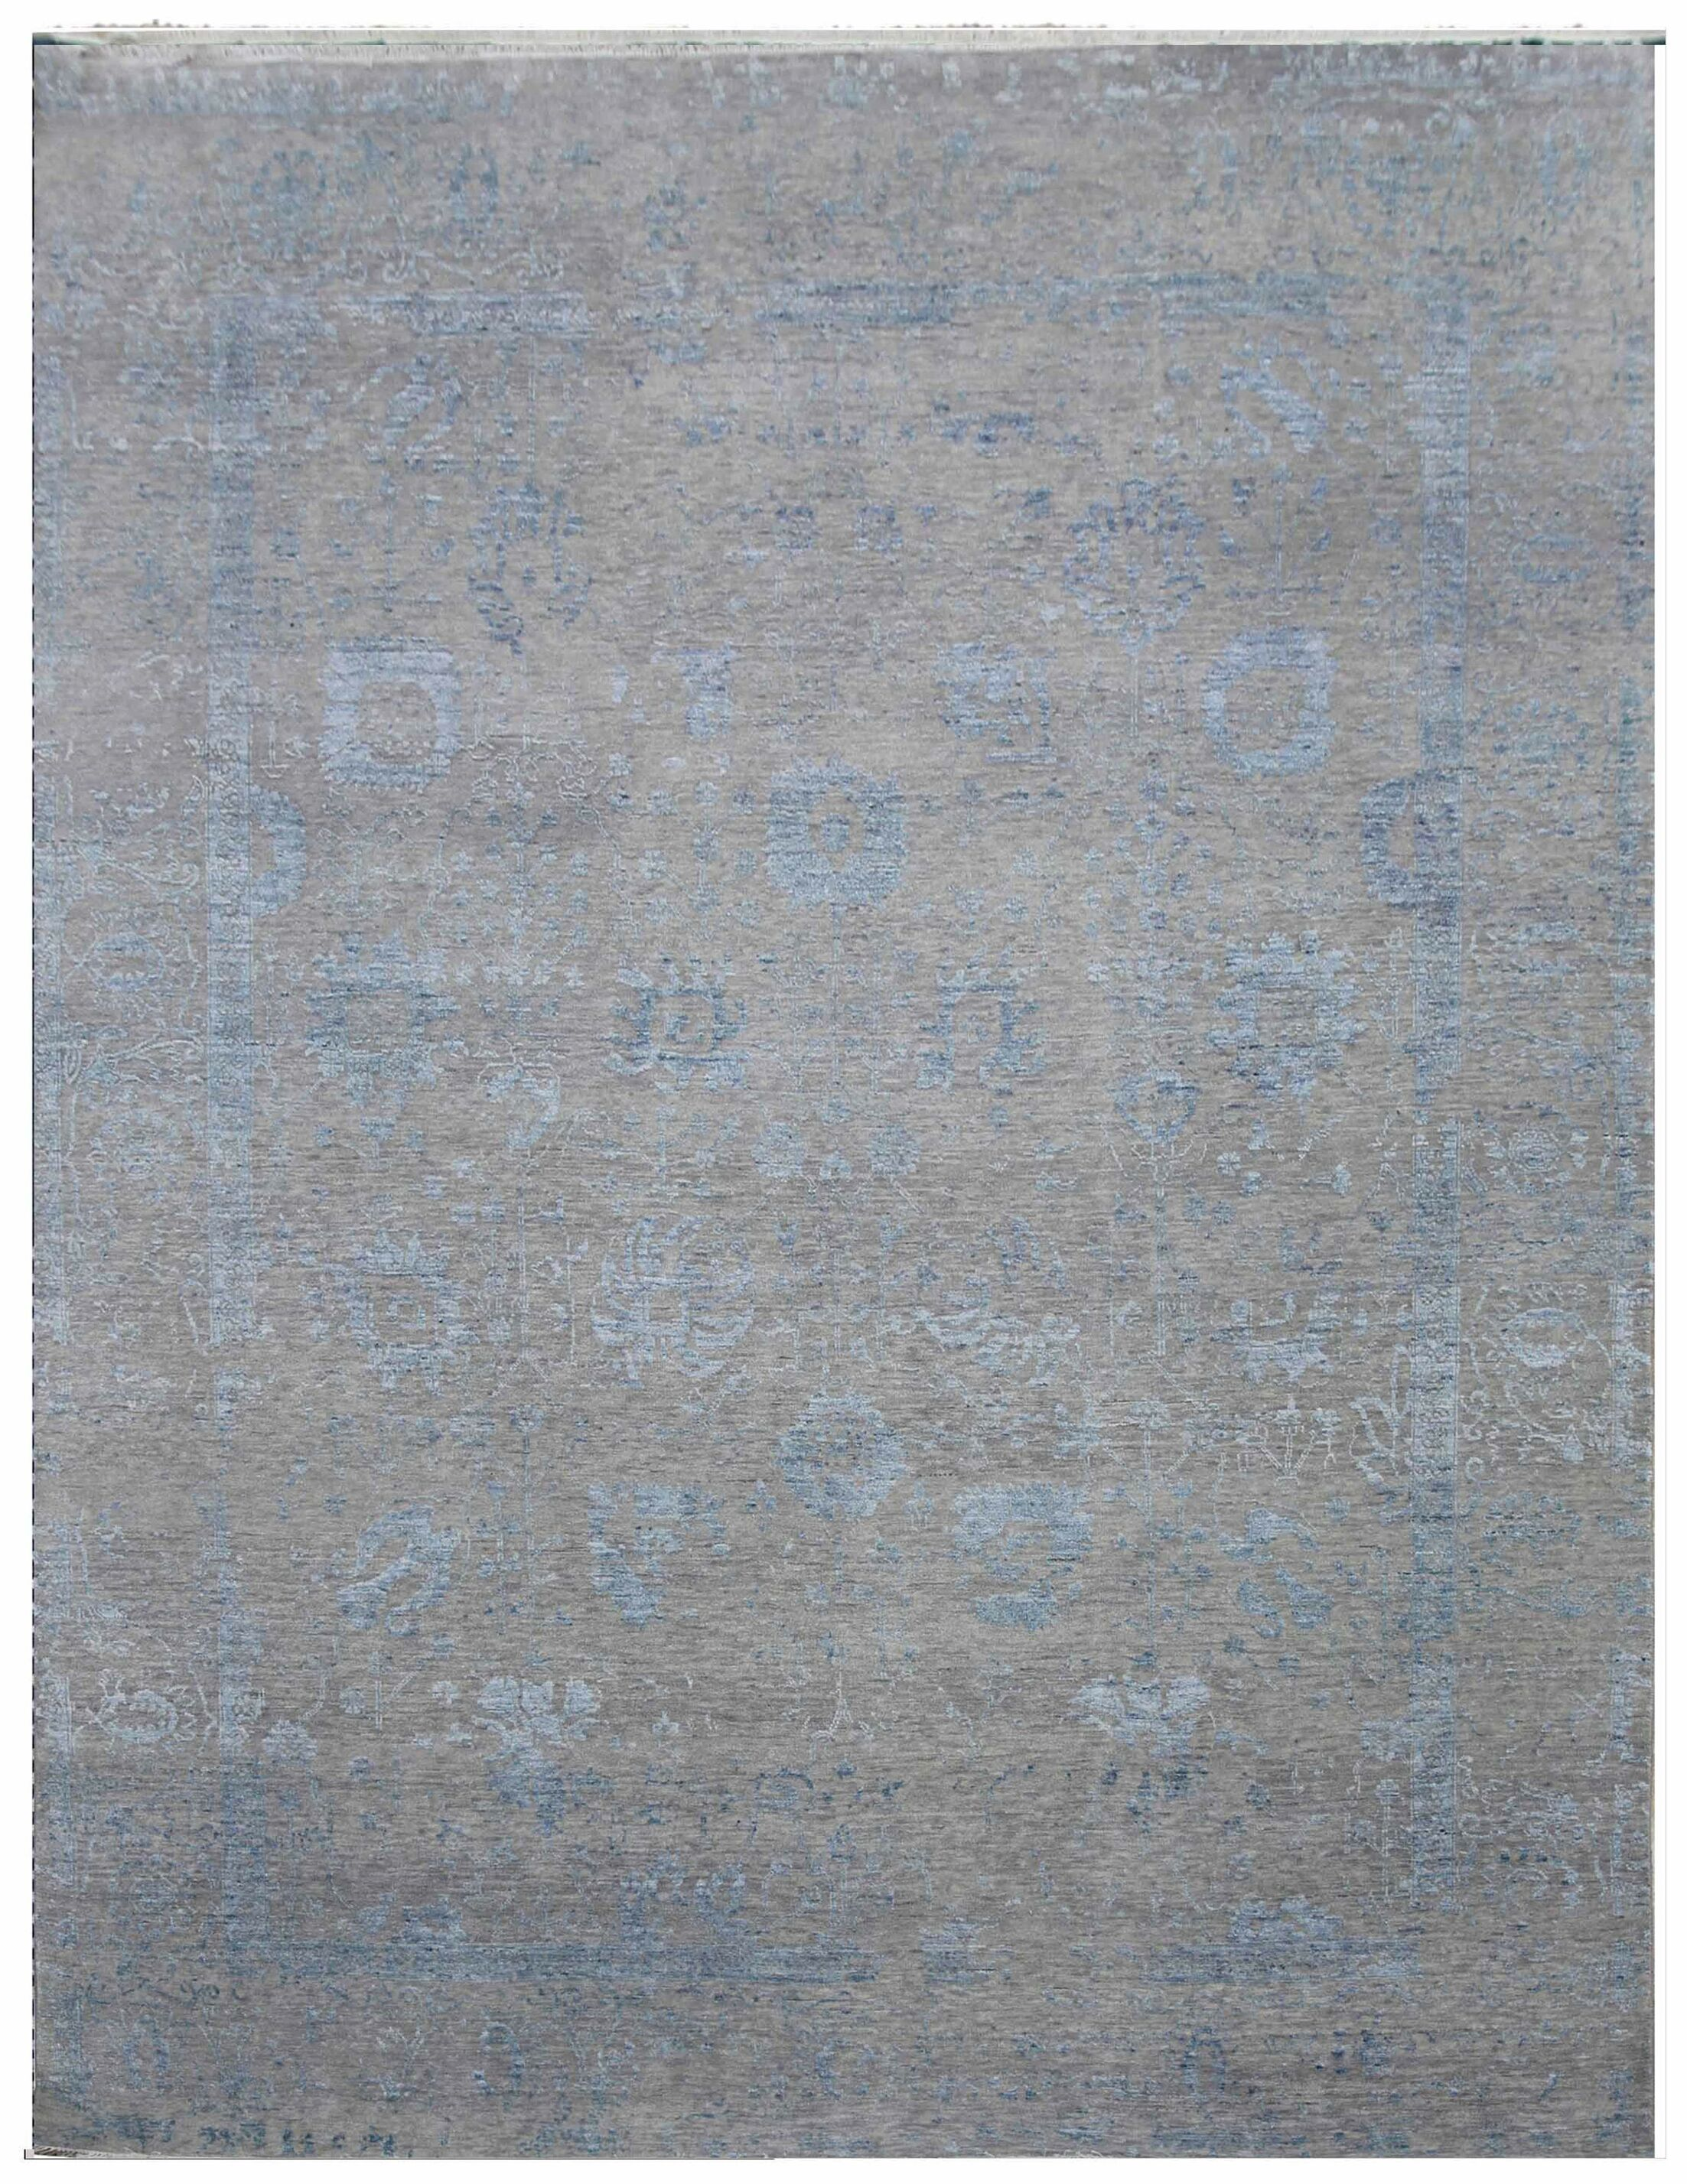 Lexington Hand-Knotted Wool Gray/Blue Area Rug Rug Size: Rectangle 6' x 9'